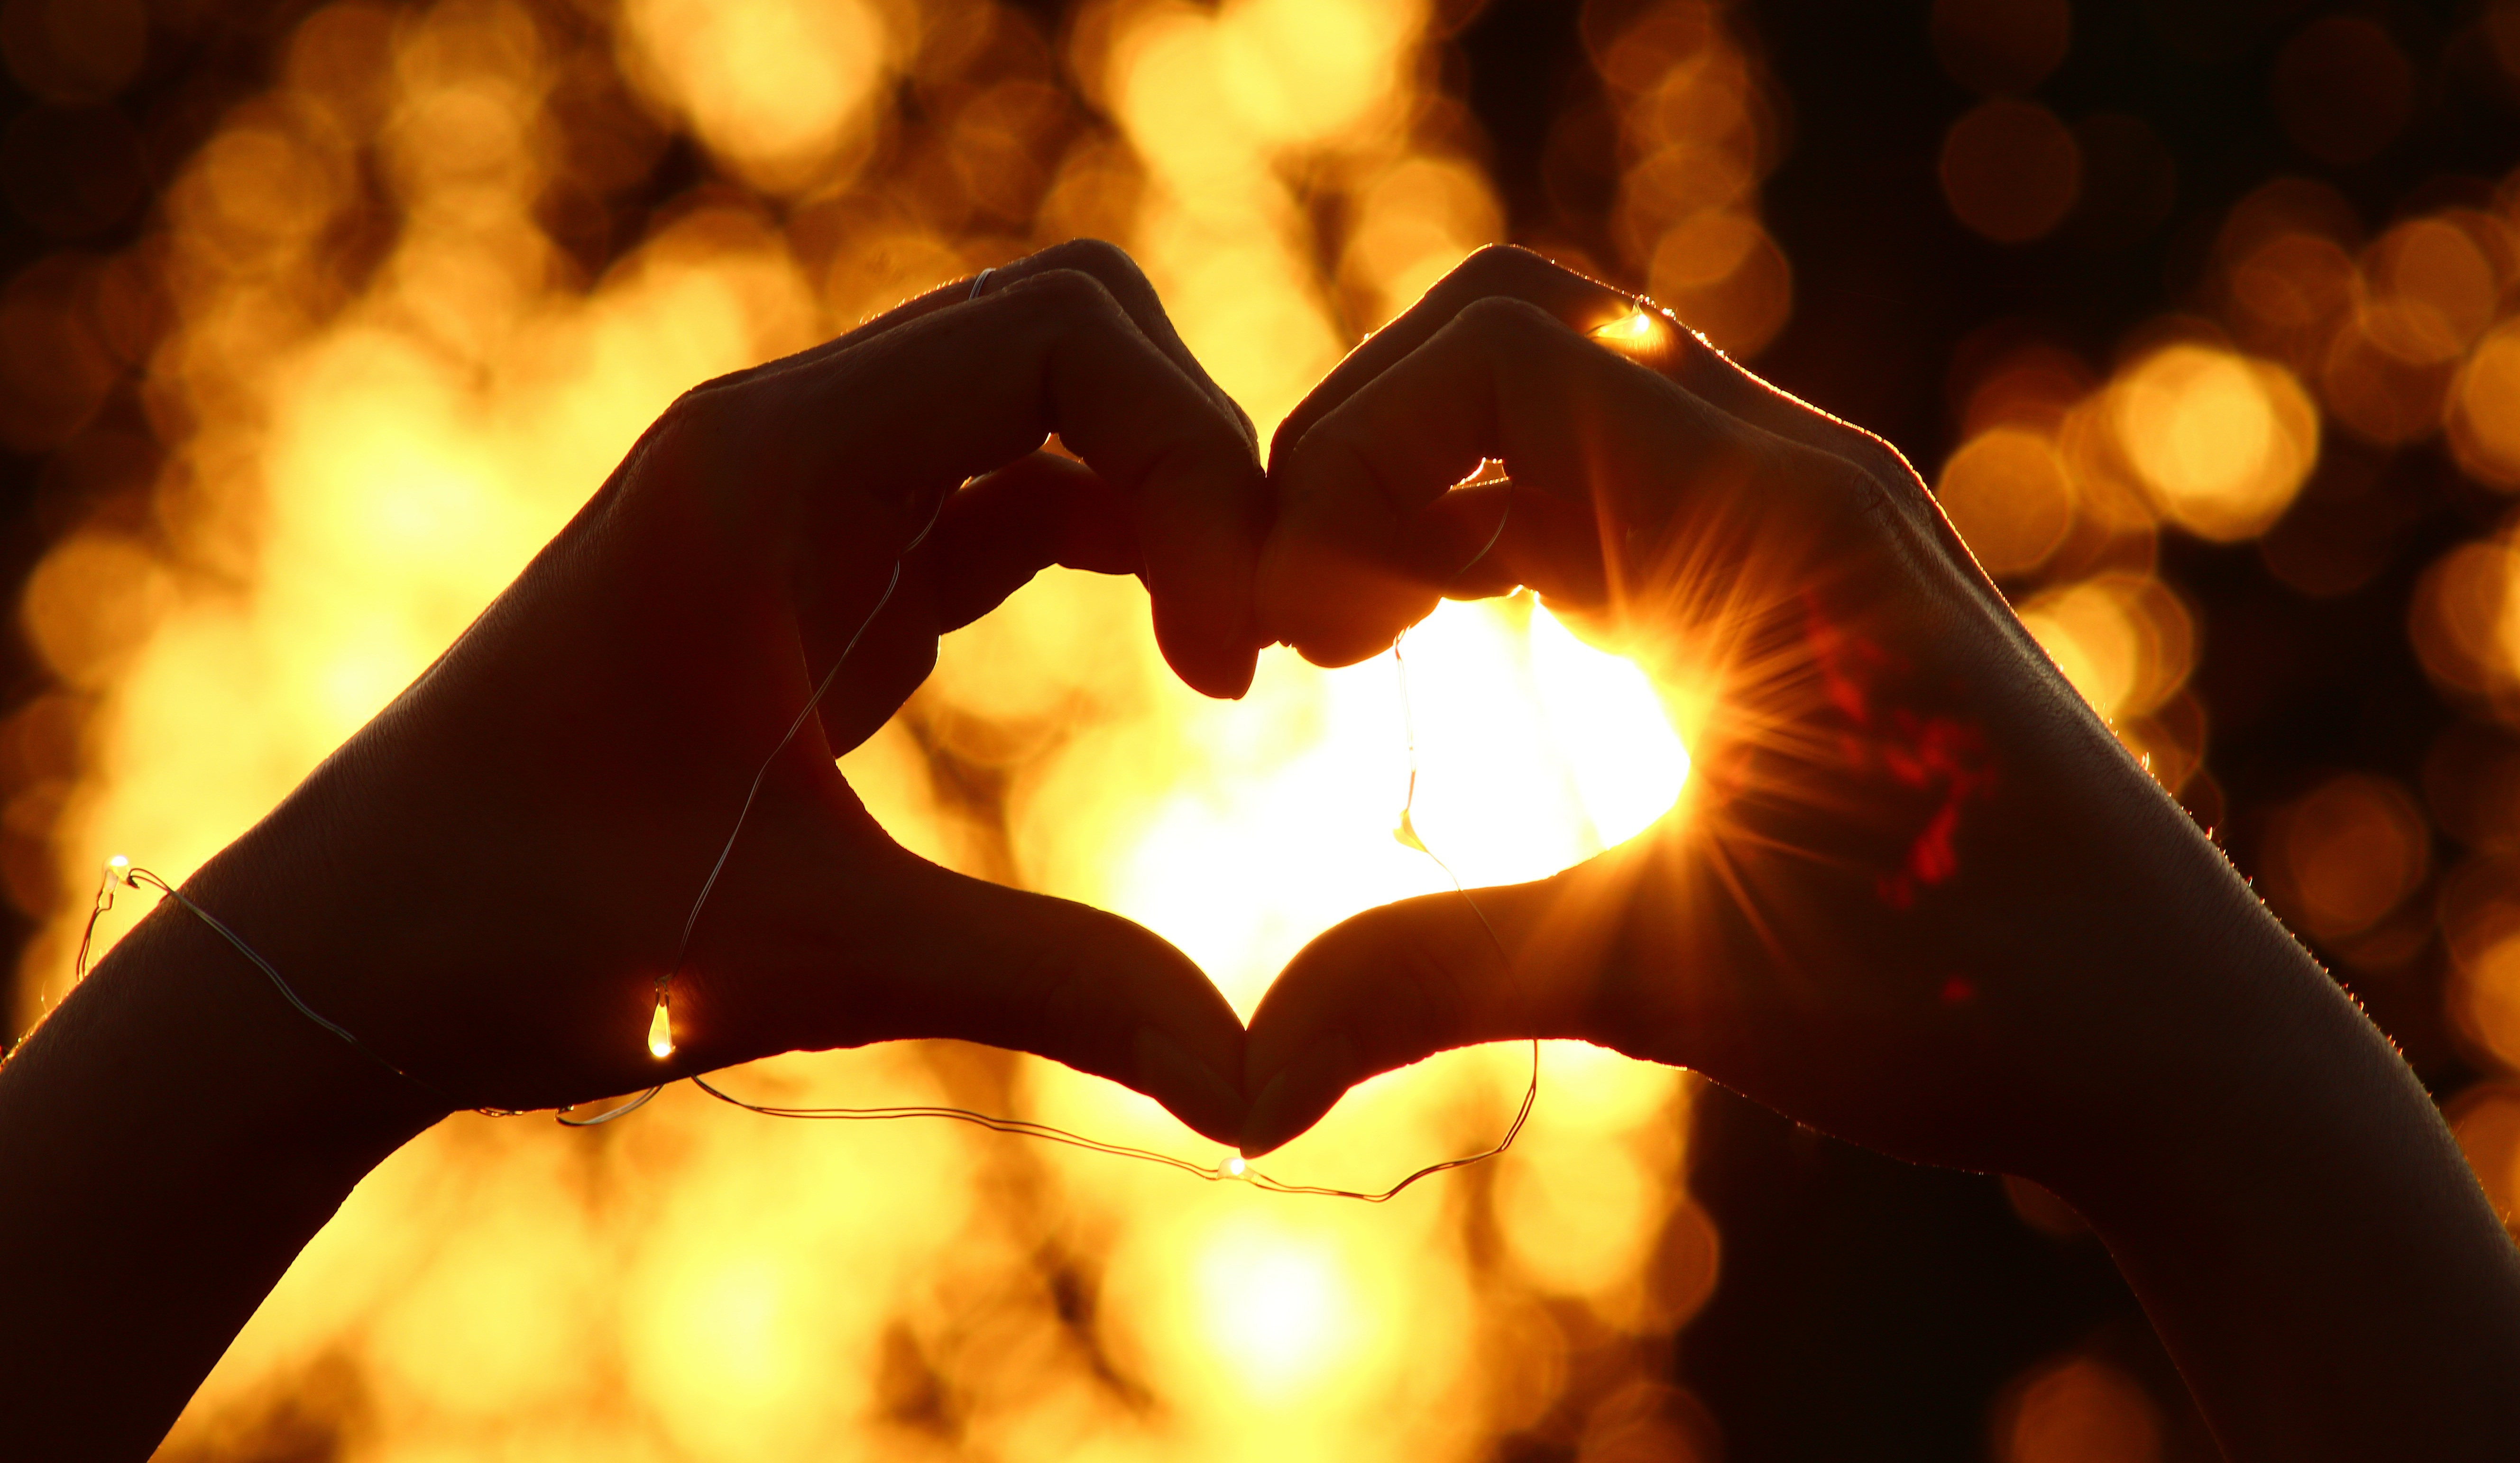 140381 download wallpaper Love, Heart, Hands, Garland, Glare screensavers and pictures for free